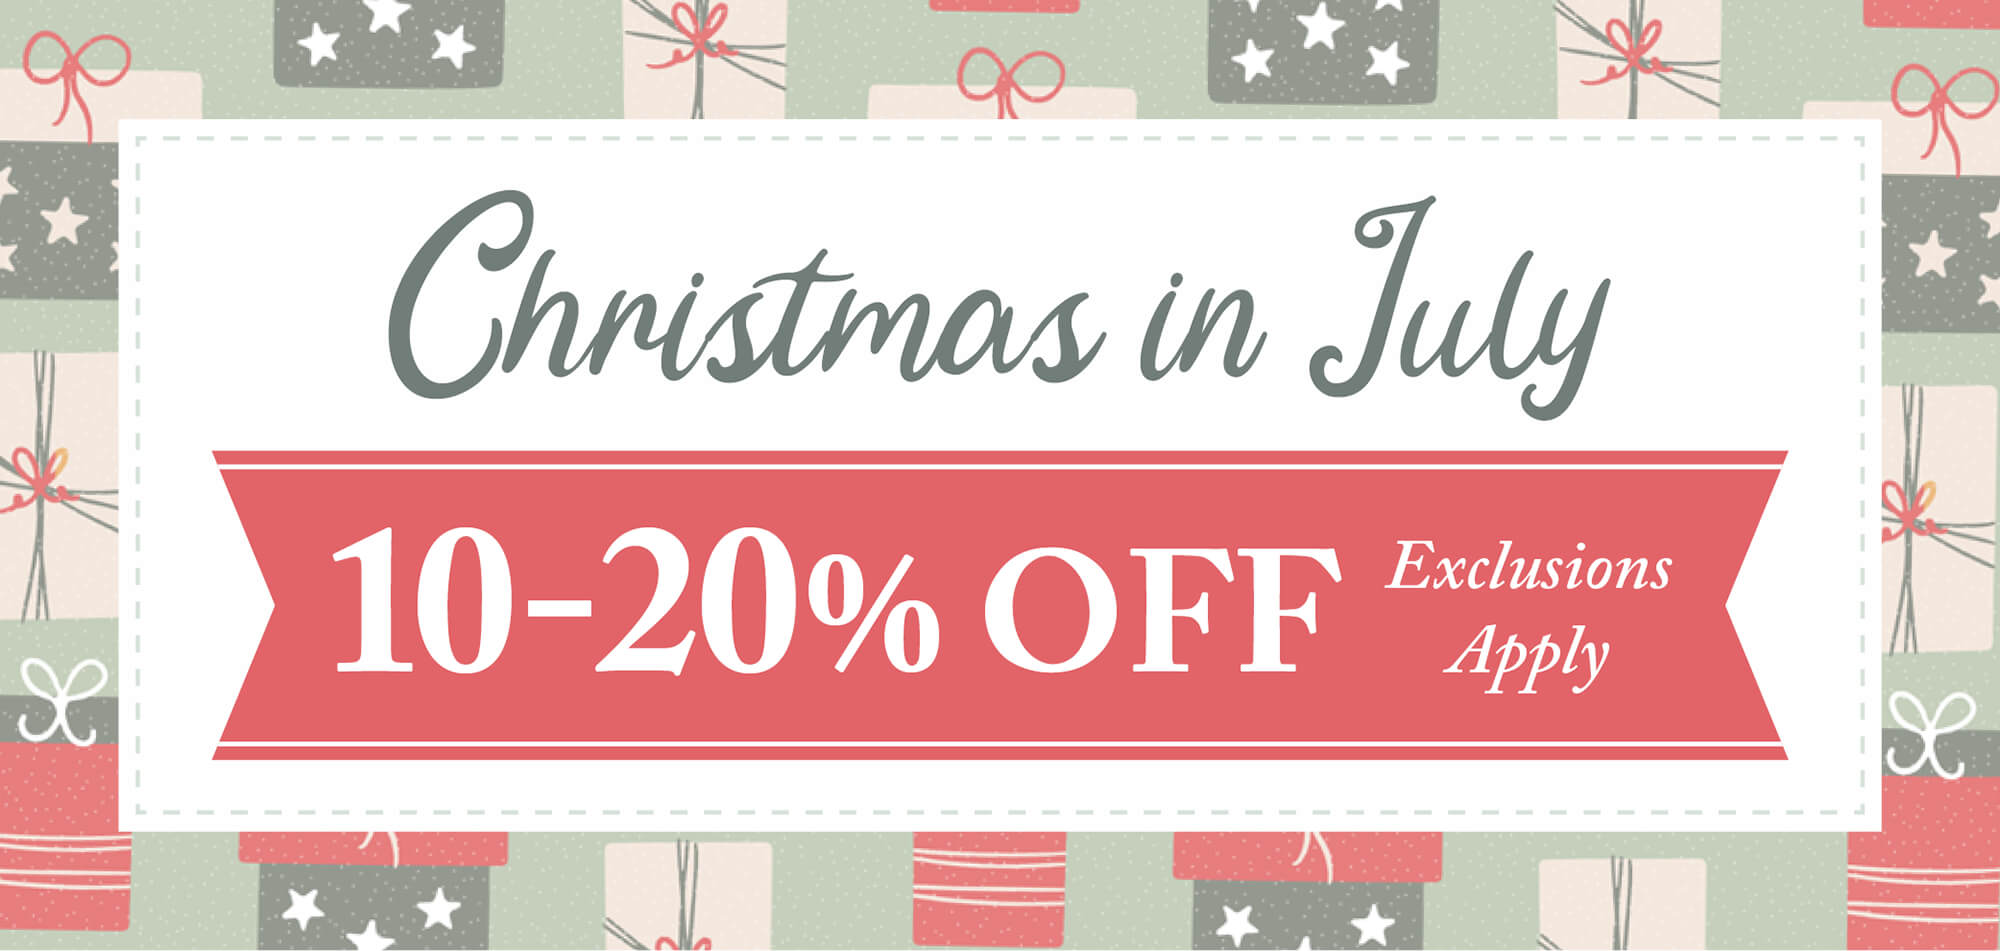 AU_Christmas_in_July_Sale_2021_MOBILE_CATEGORY_BANNER__2x